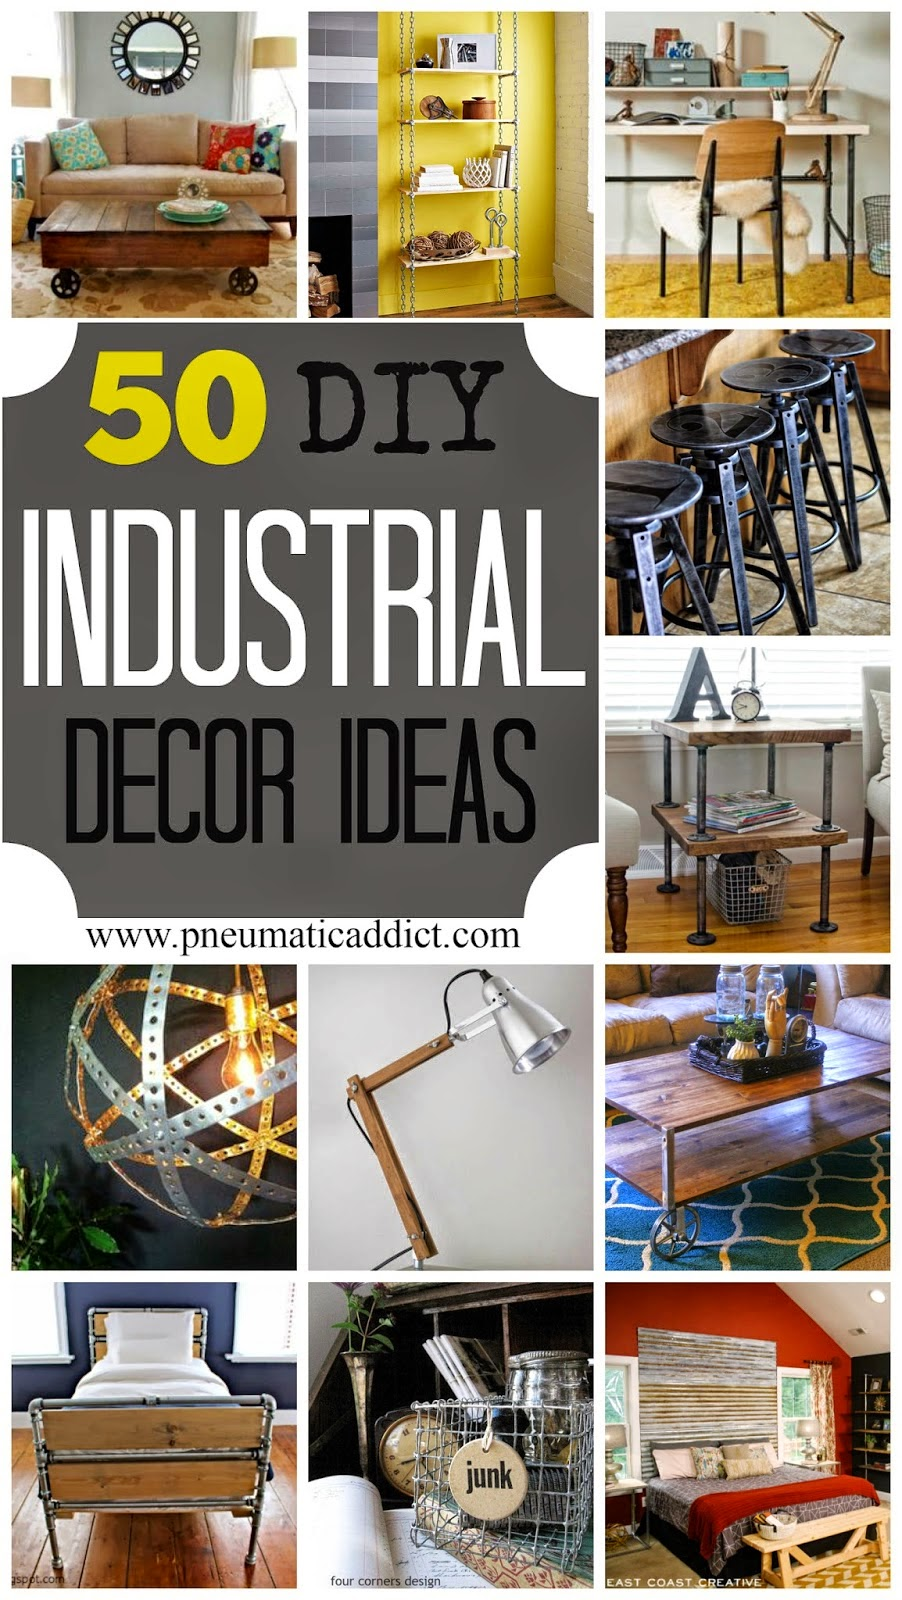 50 diy industrial decor ideas diy craft projects for Decoration ideas